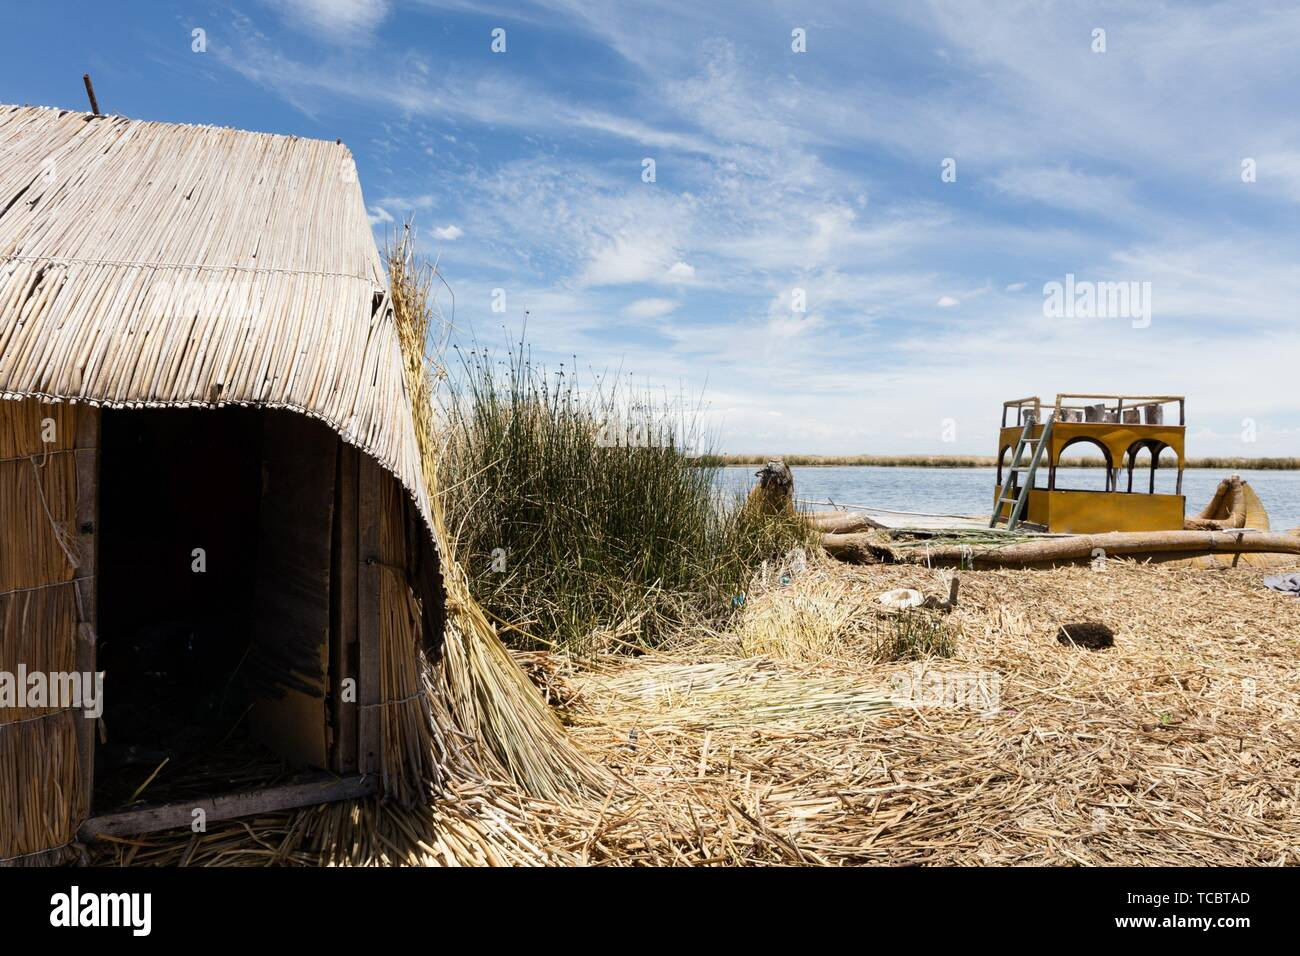 traditional tent on the Titicaca lake near Puno, Peru. - Stock Image